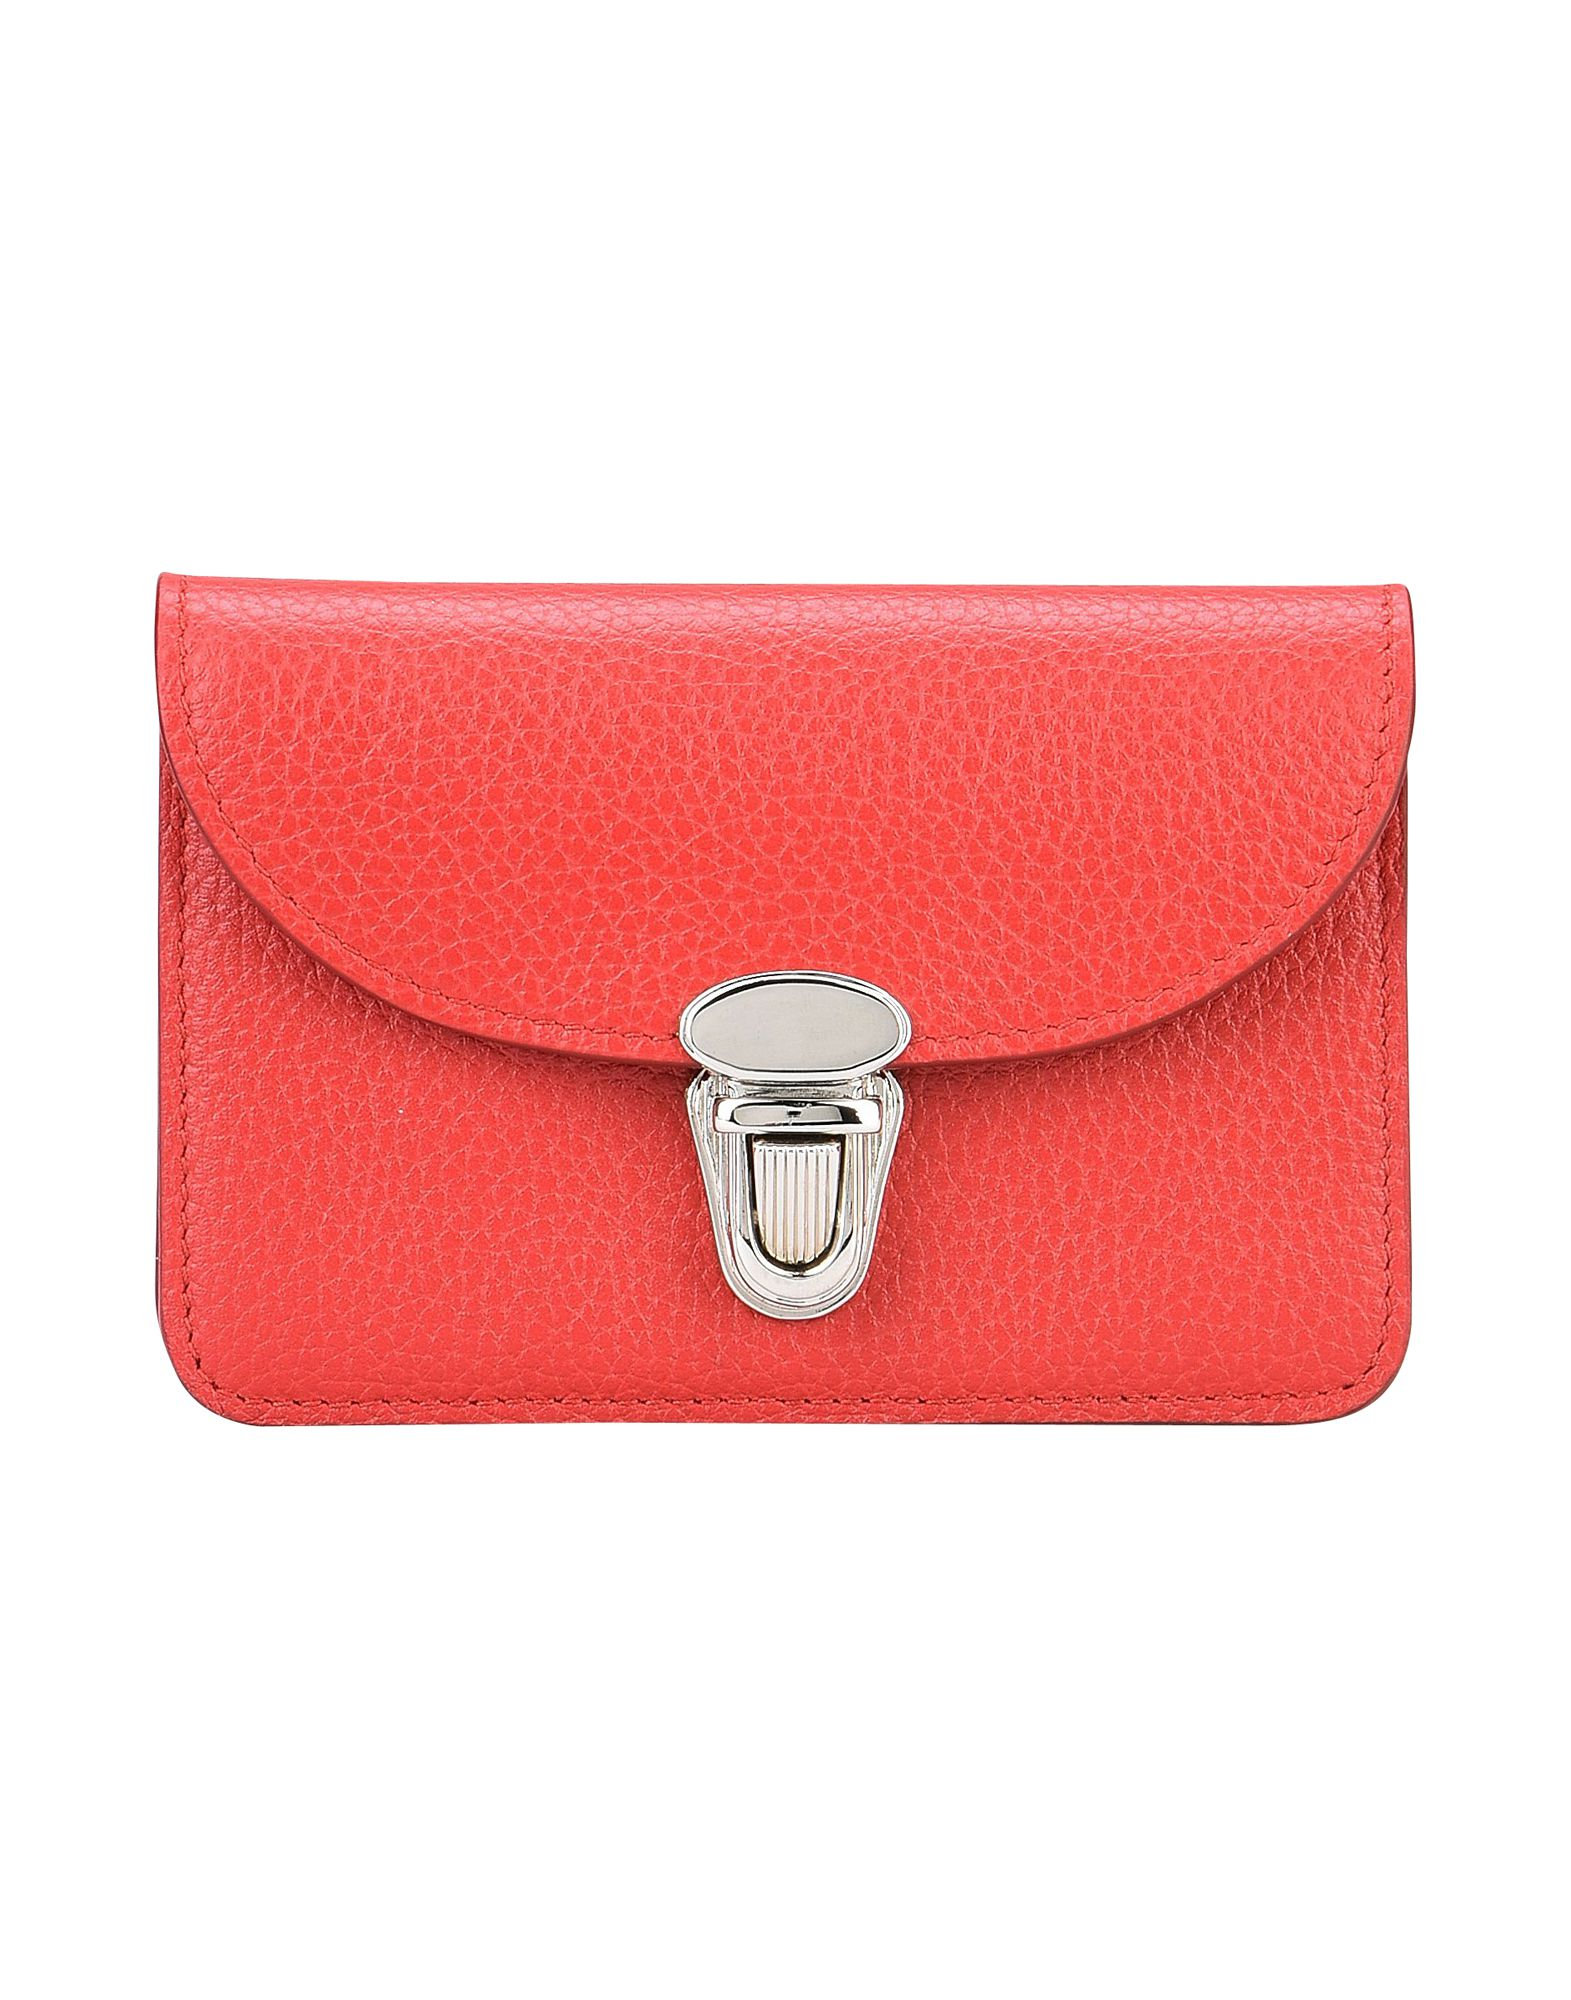 THE CAMBRIDGE SATCHEL COMPANY Бумажник